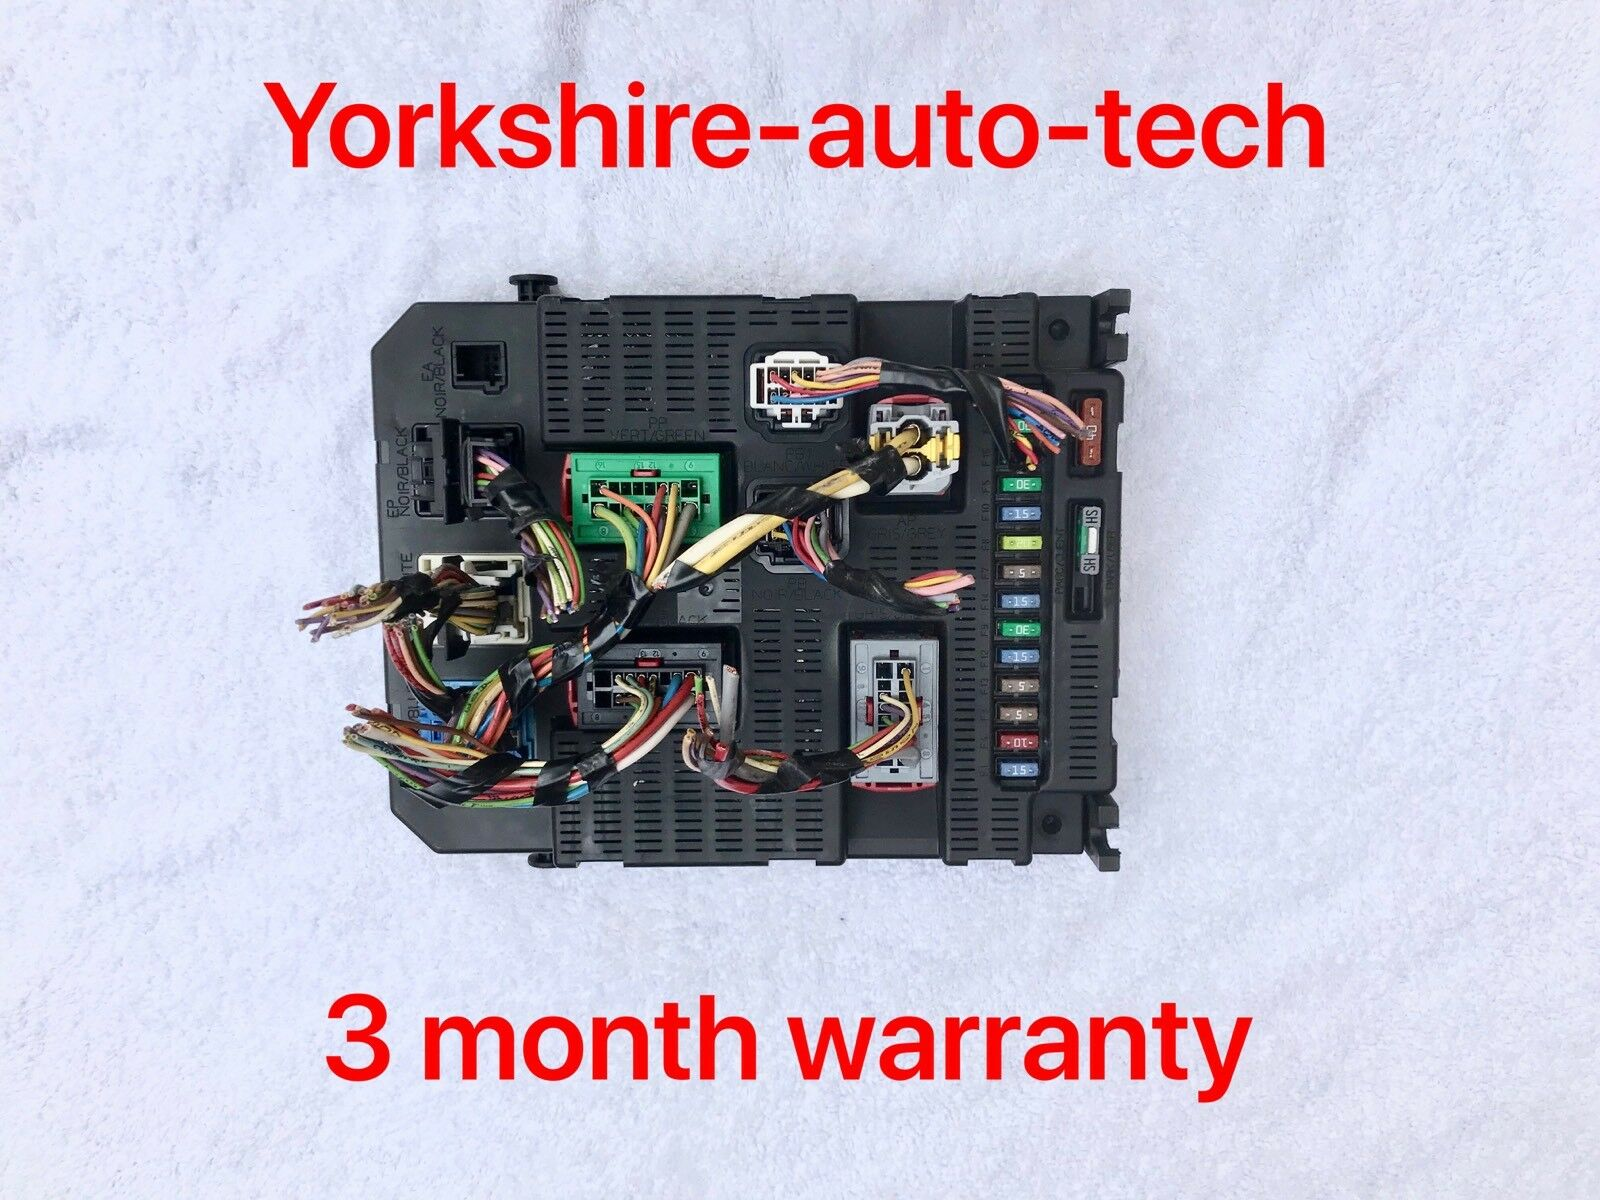 Citroen C4 Peugeot 207 16 Petrol Fuse Box Bsi Module 9659285580 1 Of 3only Available